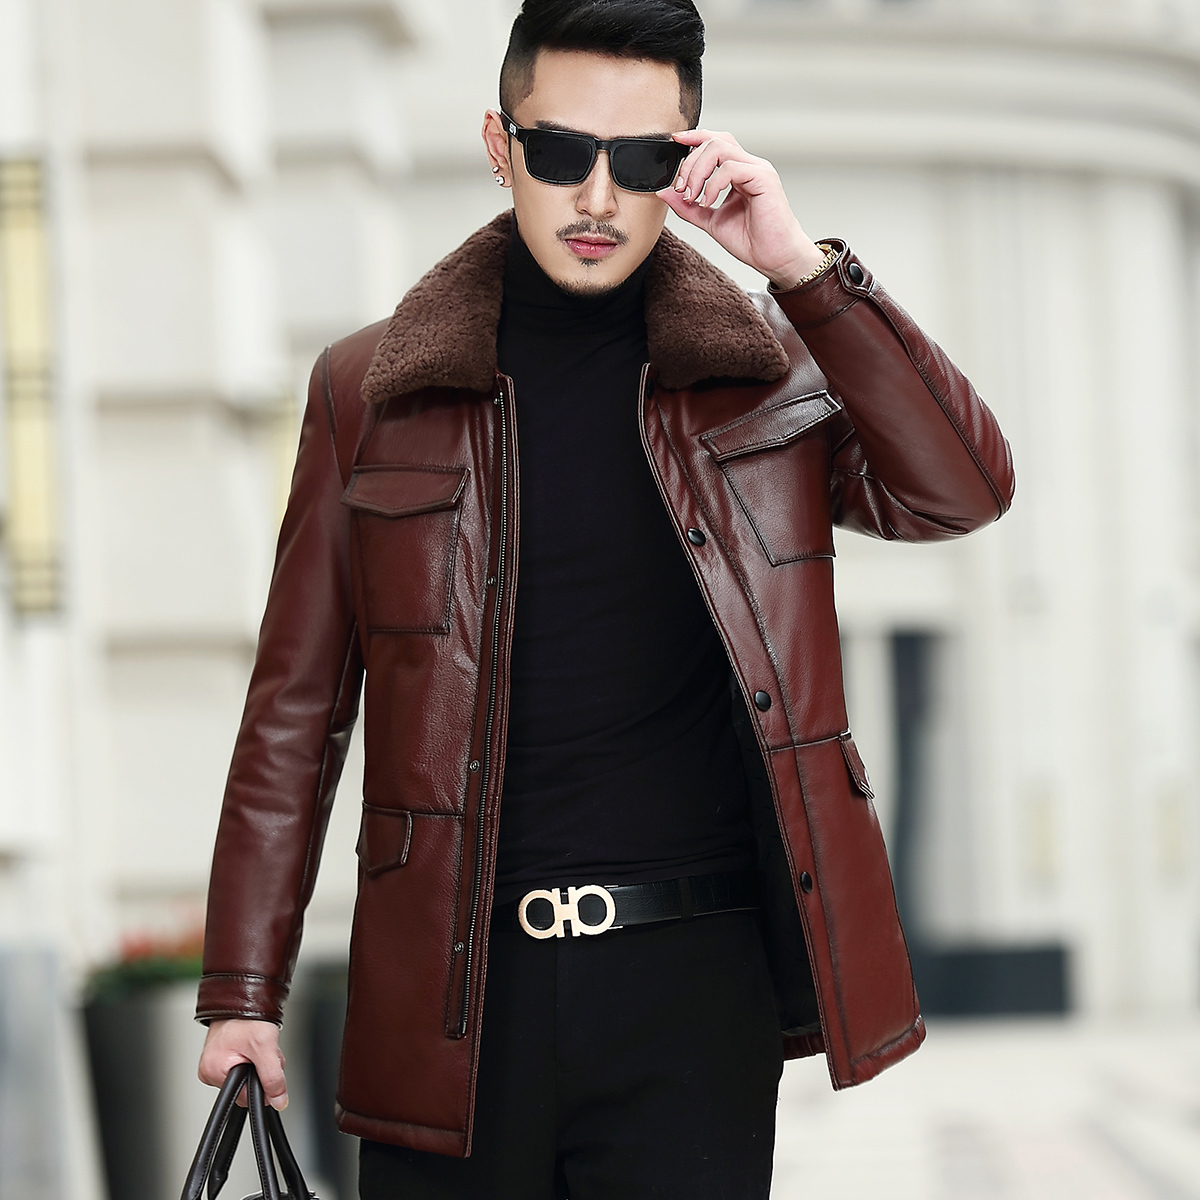 Real Leather Jacket Men Cow Leather Jacket Lamb Fur Collar Duck Down Winter Coat Mens Leather Jacket Casaco MA7211NR90 YY1143